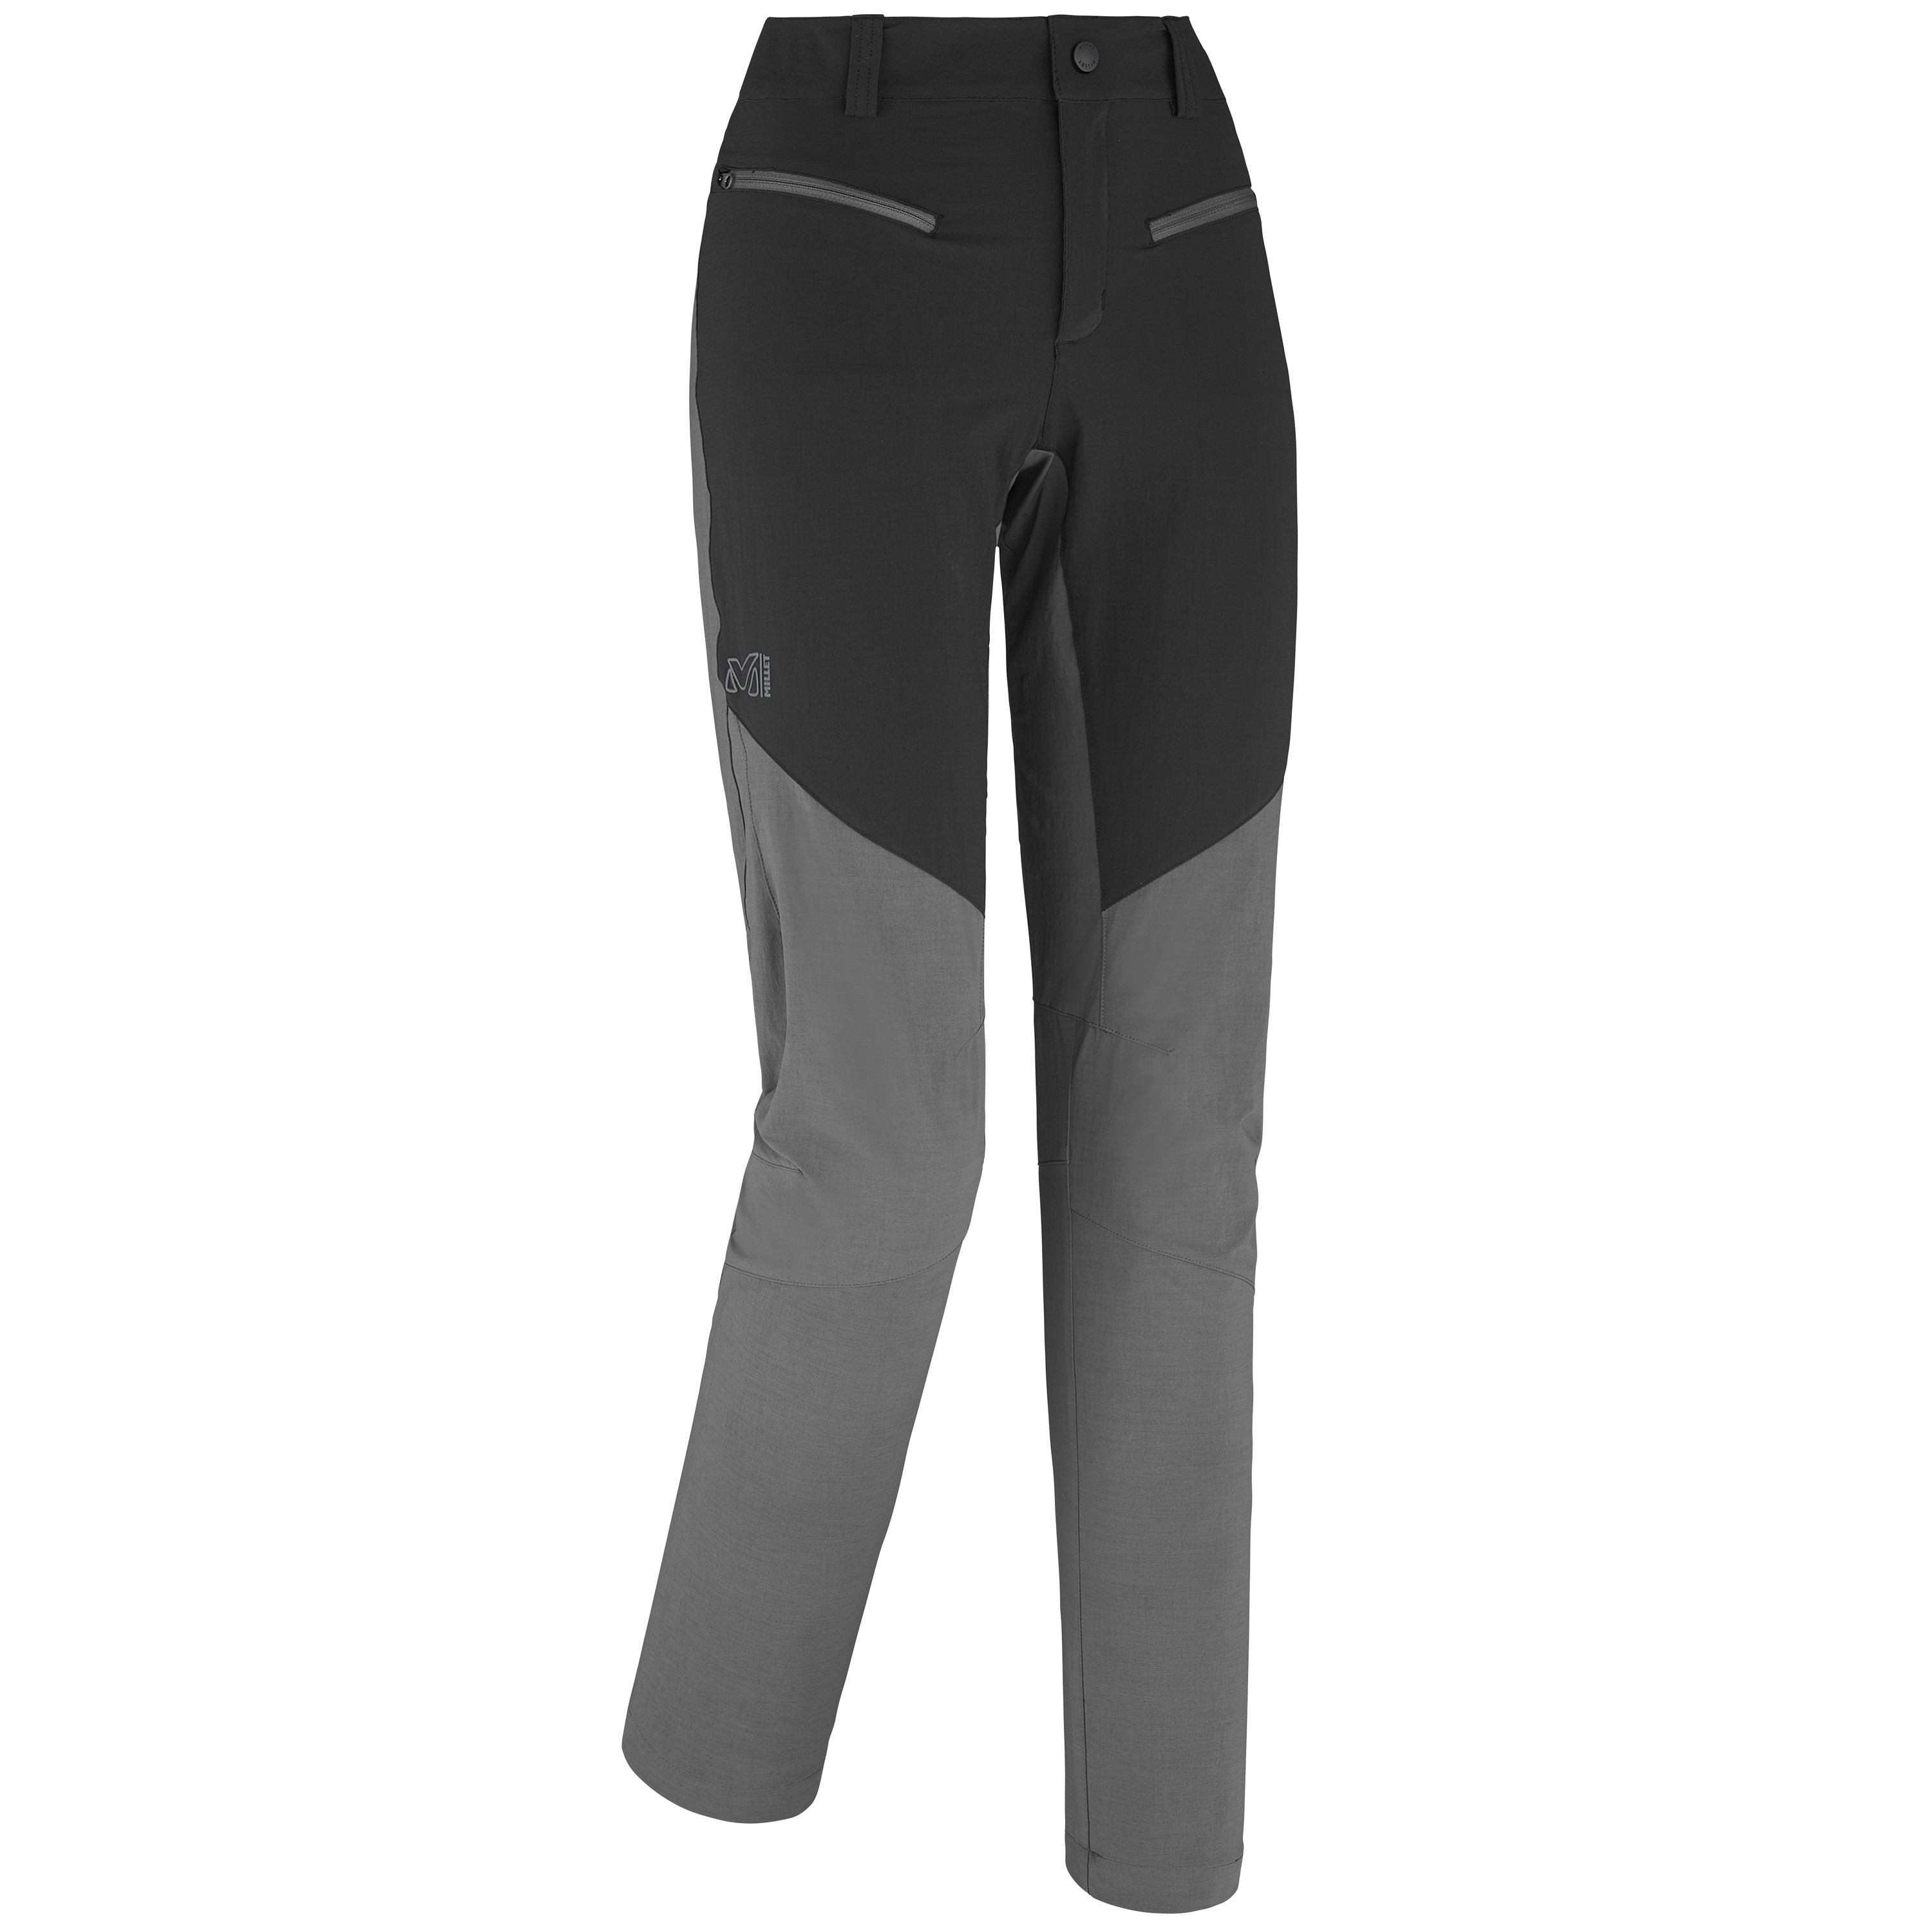 bea735c4370c Lifestyle Sporty Slim Woman in Black Pants – Summer Collection Glamor Stock  Photo – 19120928